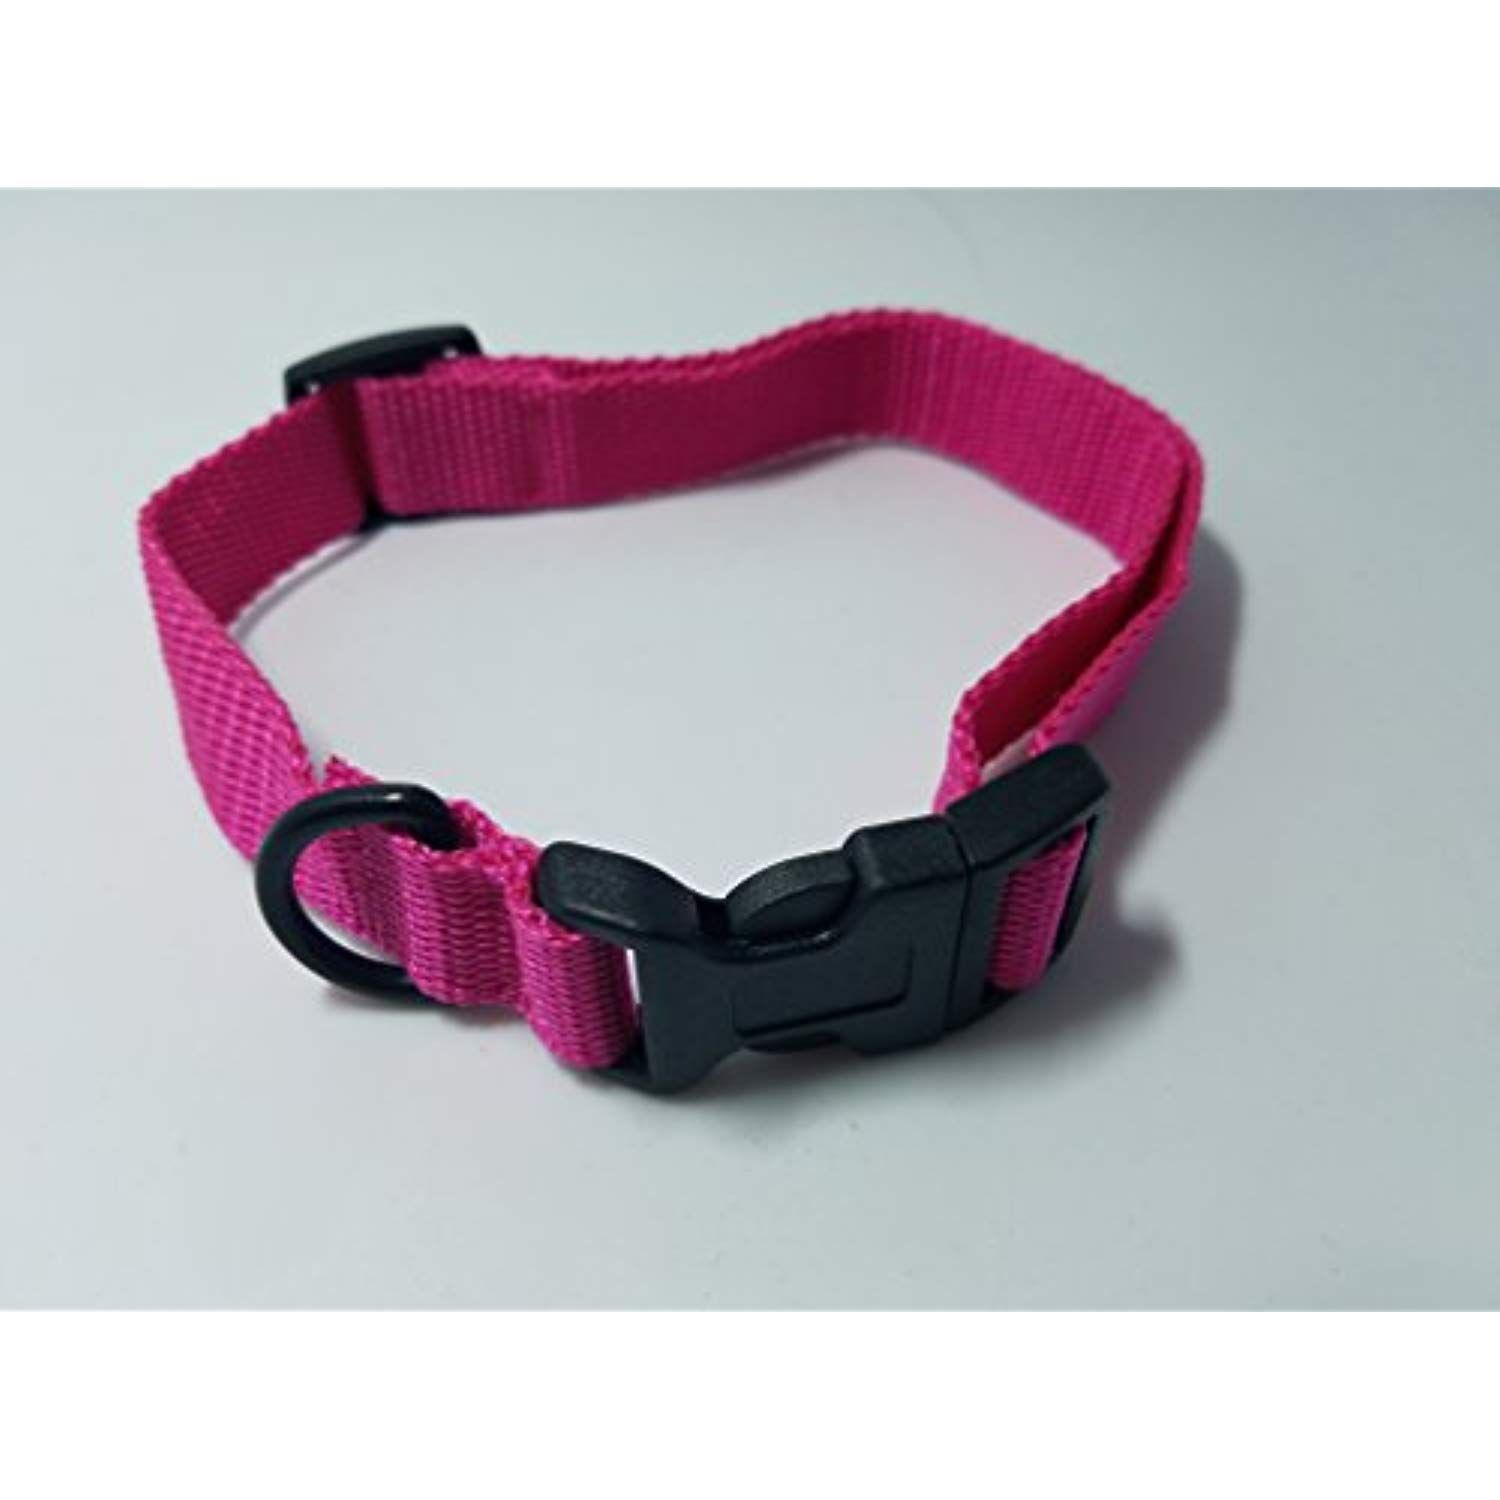 Replacement Extra Collar Strap Band Buckle 3 4 For Garmin Delta Dogtra Sportdog Tri Tronics Petsafe Trainpro Pet Dog Training Collar Pink Fashion Dog Training